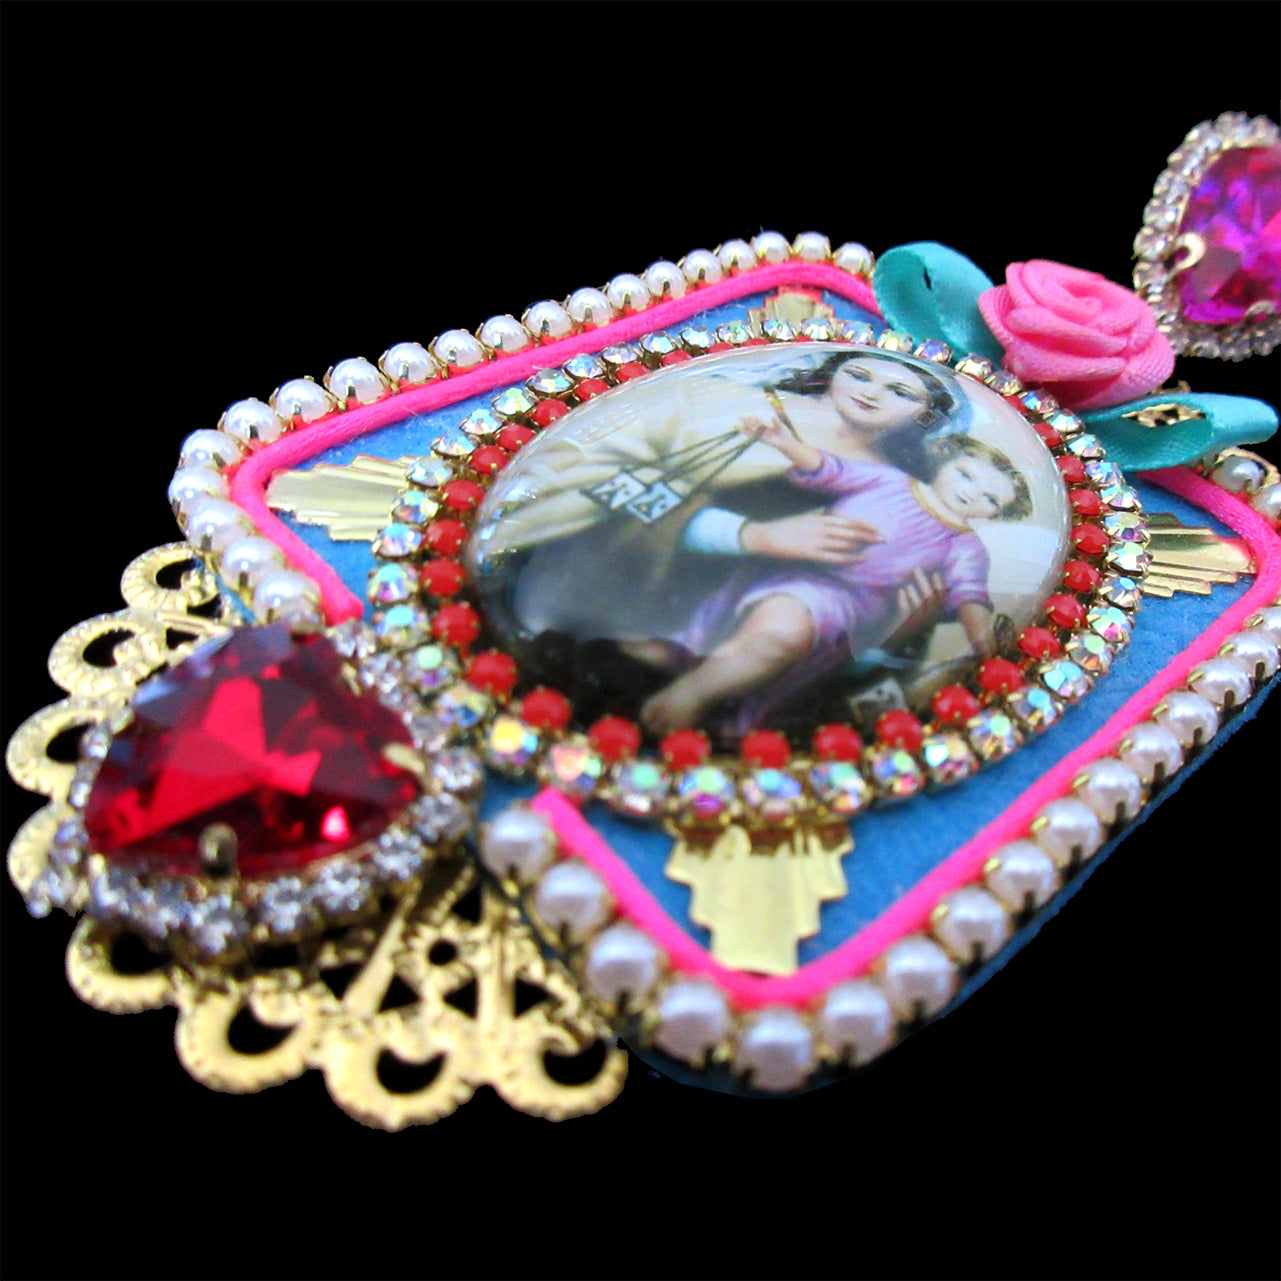 mouchkine jewelry handmade in france earrings. A madonna under glass surrounded by pink and red swarovski rhinestones. Chic and trendy.